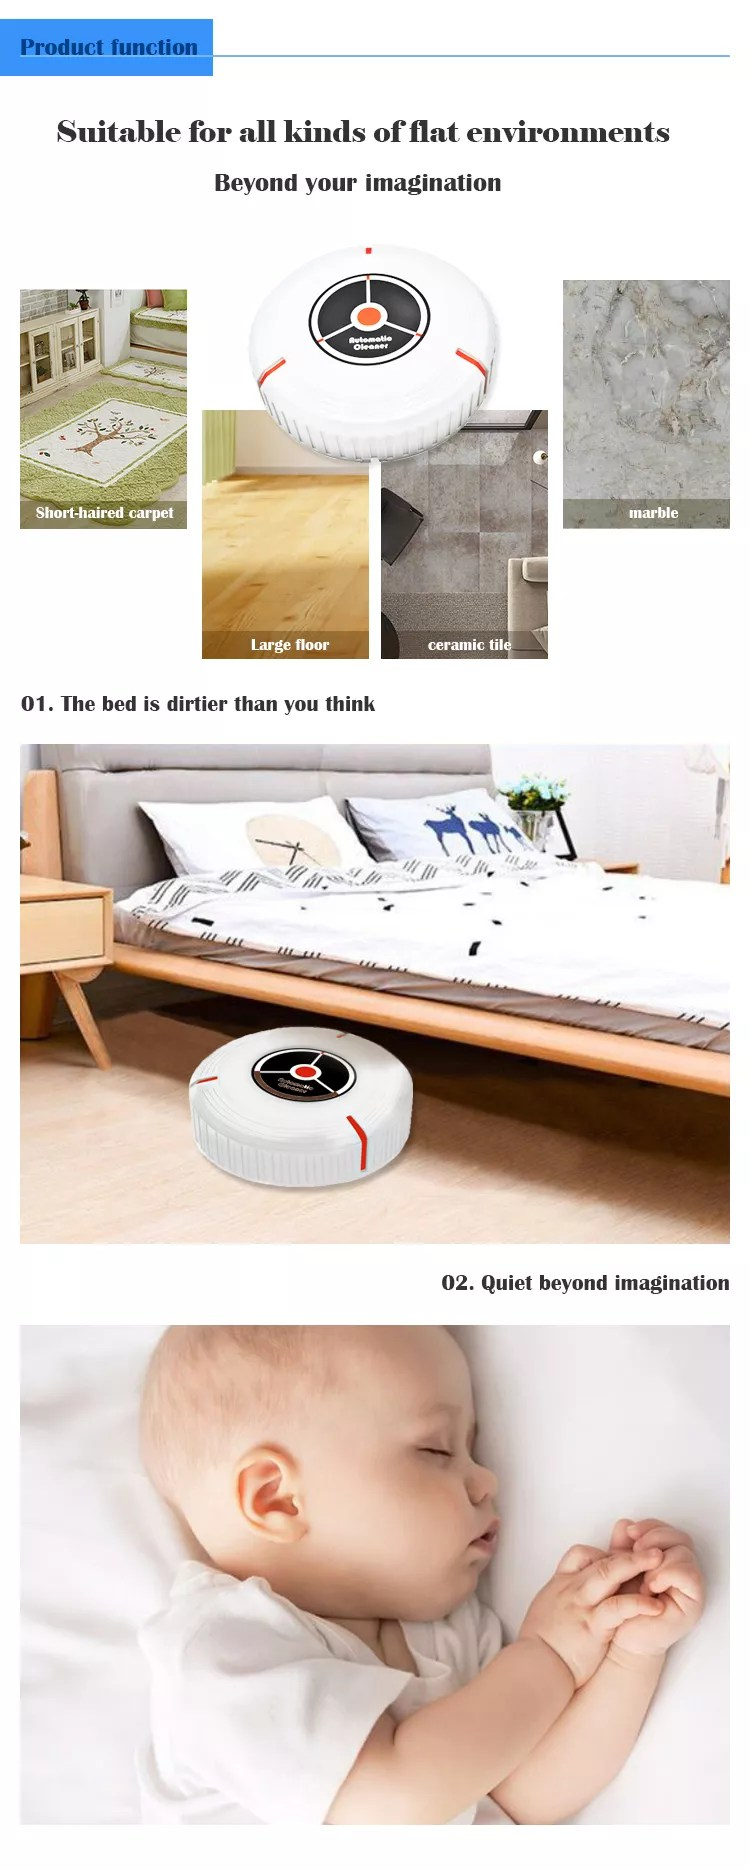 How To Dry Clean Sofa At Home Robotic Vacuum Cleaner Dry Cleaning Machine For Sale In Philippine 3m Vacuum Room Electric Home Appliance Buy Electric Home Appliance Robotic Vacumm